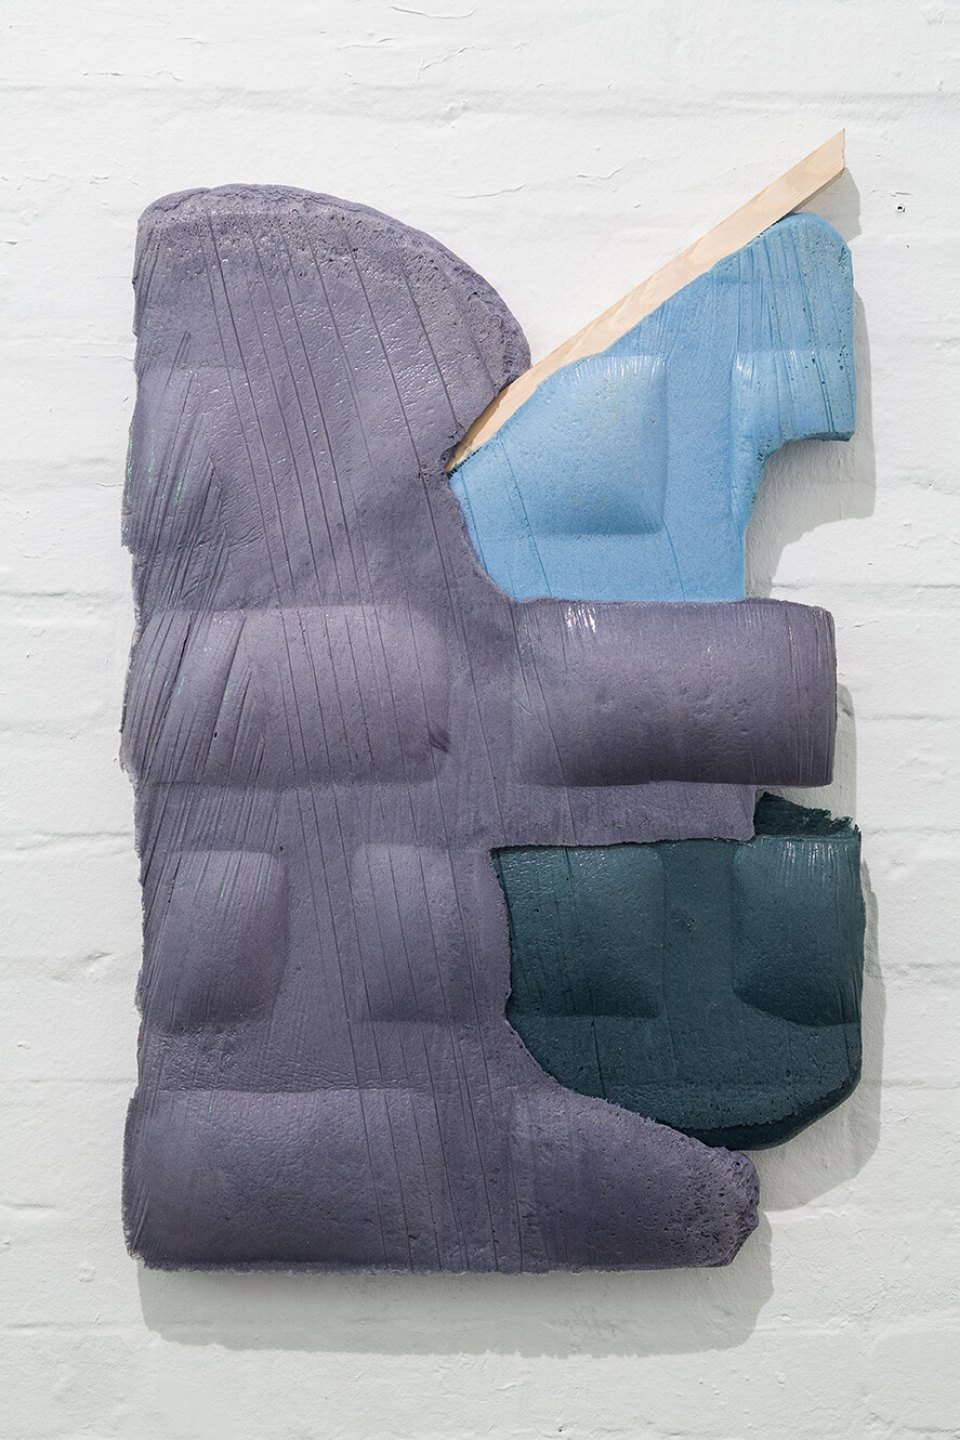 Neïl Beloufa,&nbsp;<em>Unframed archive, from Secured wall series</em>,&nbsp;2014, extensive foam, pigment and wood, 87 × 51 × 6 cm - Mendes Wood DM